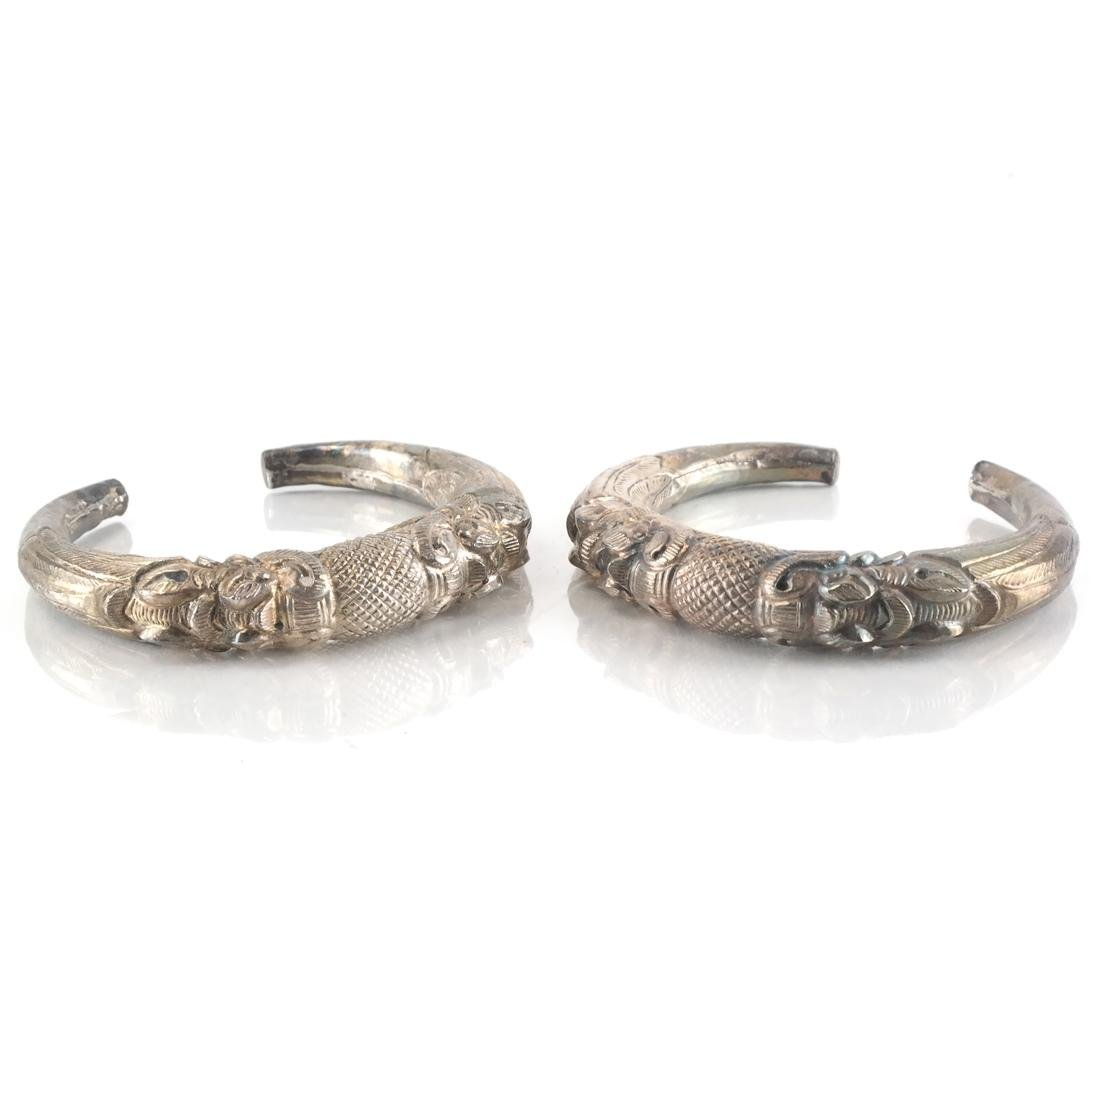 Pair Antique Afghan/Central Asian Silver Bangles